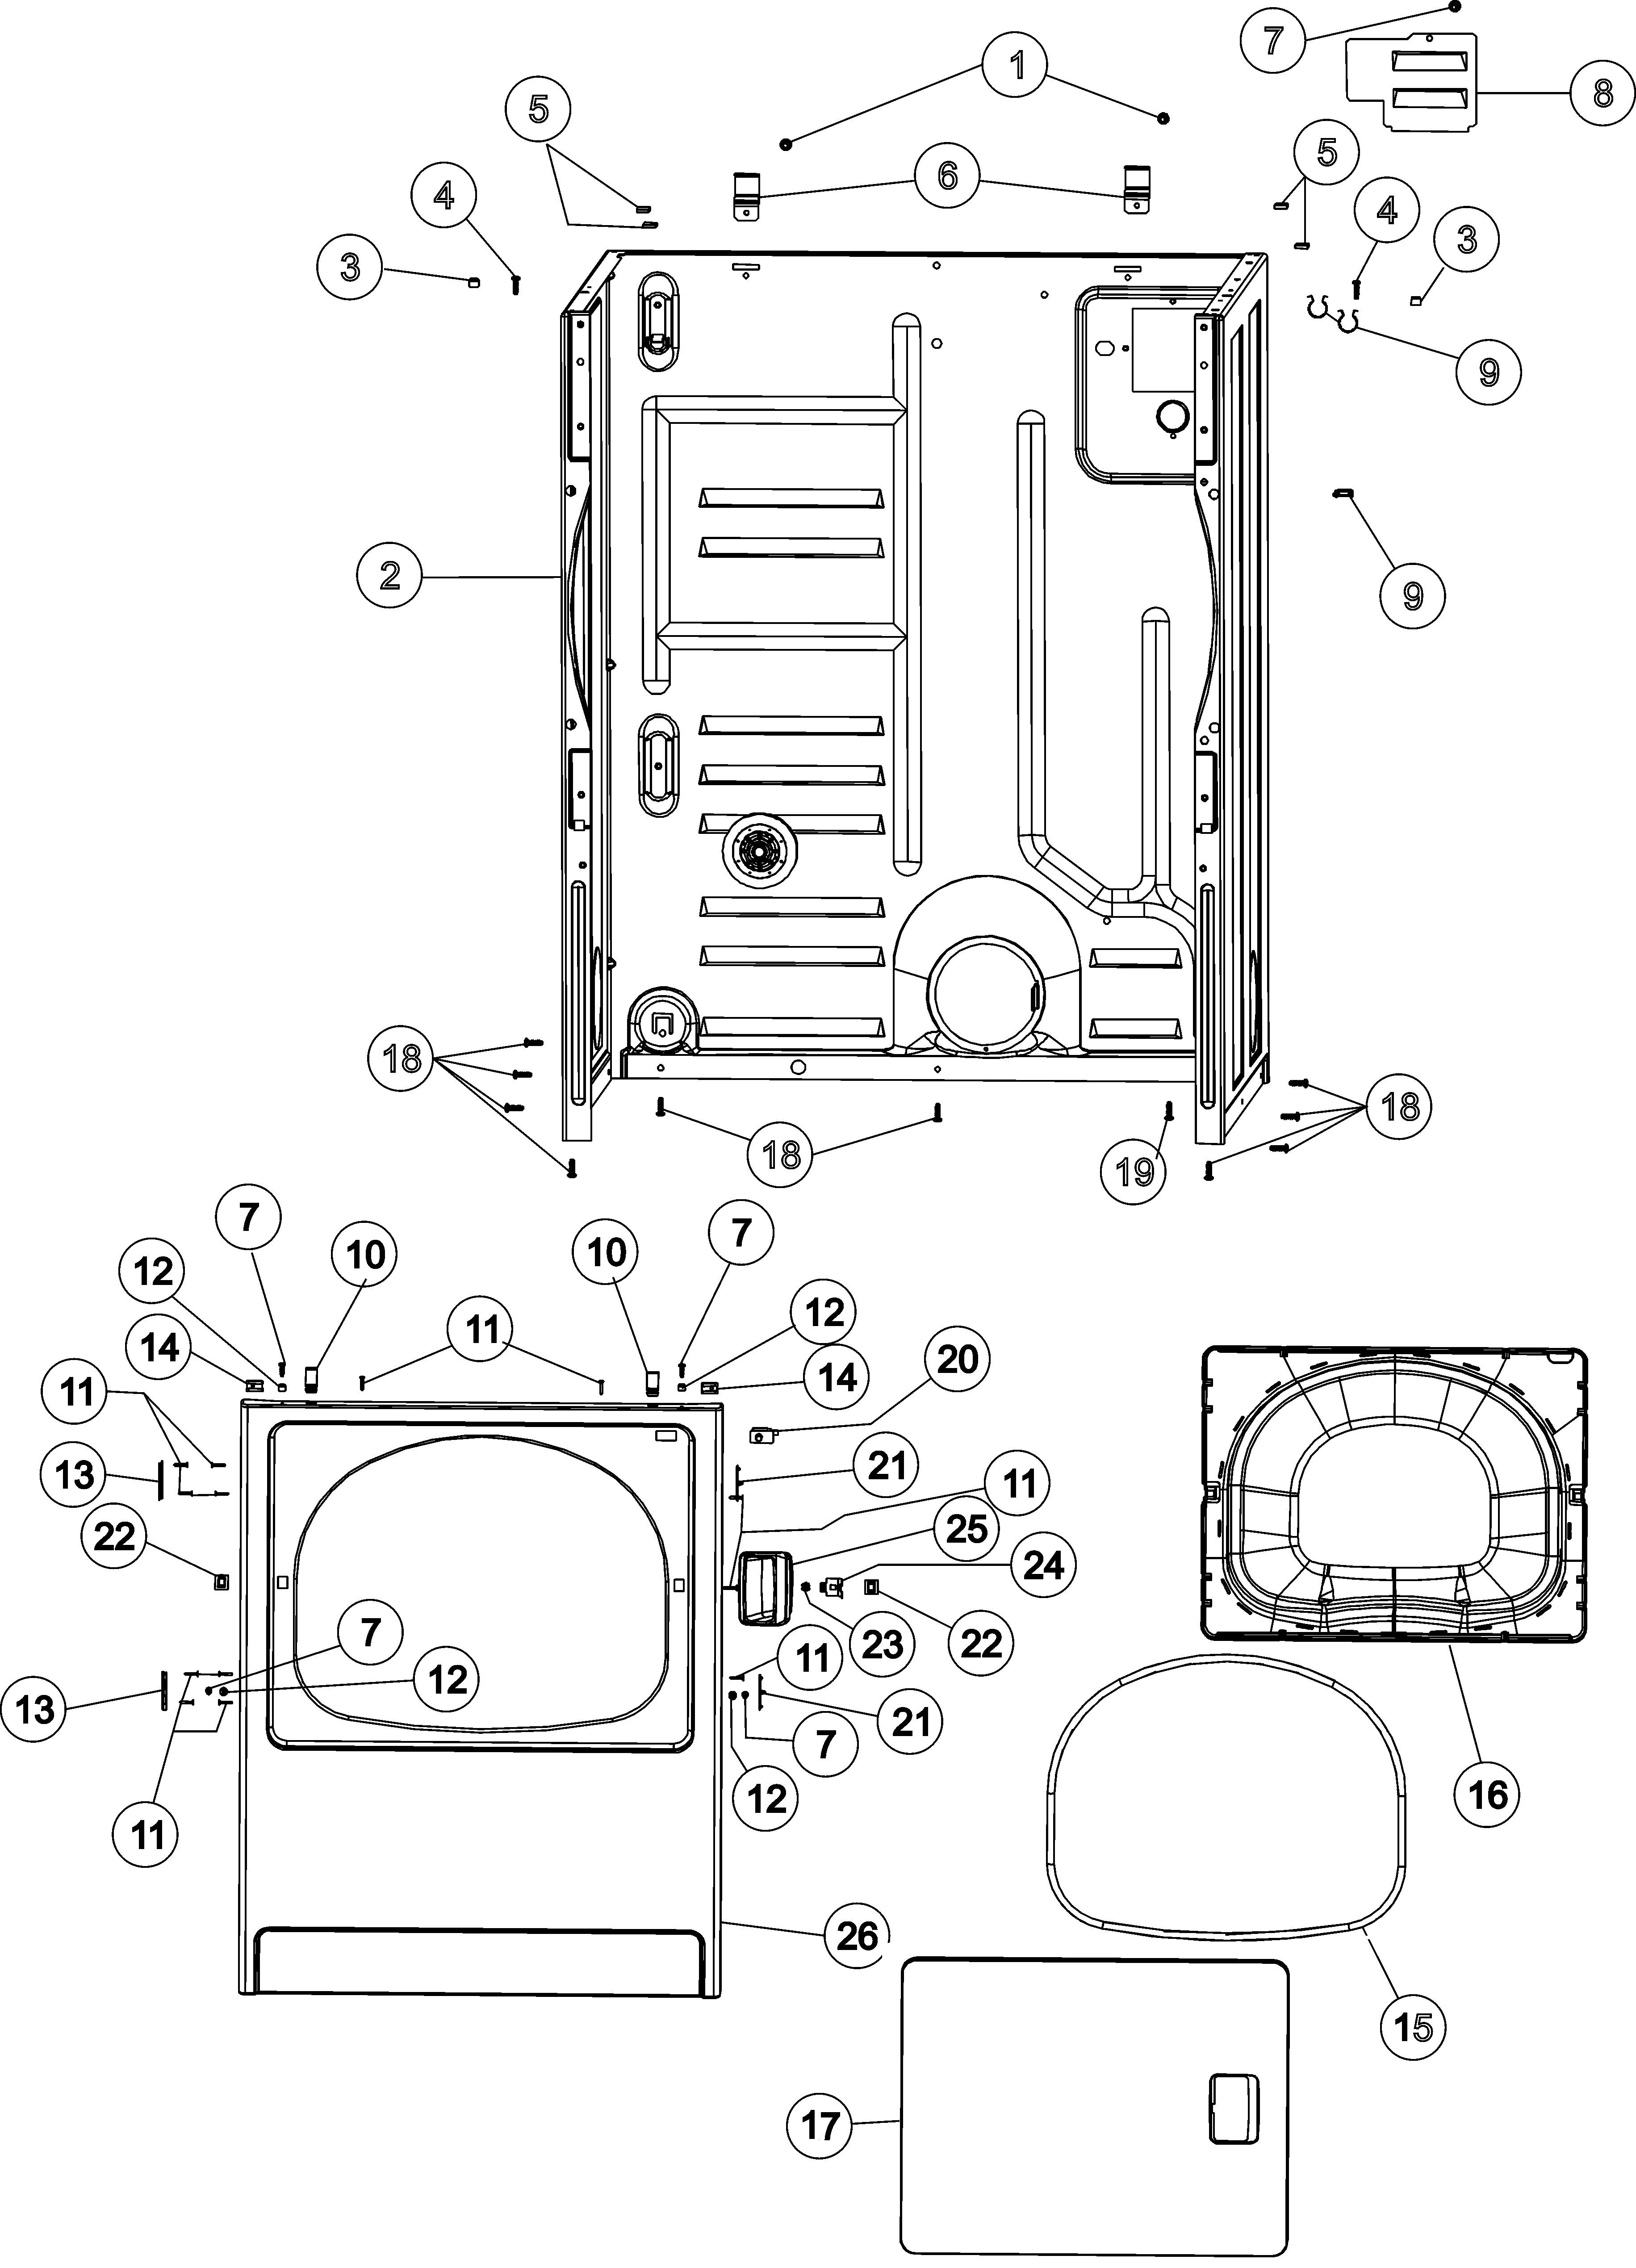 laundry dryer wiring diagram whirlpool dryer controls haier dryer wiring diagram whirlpool gold